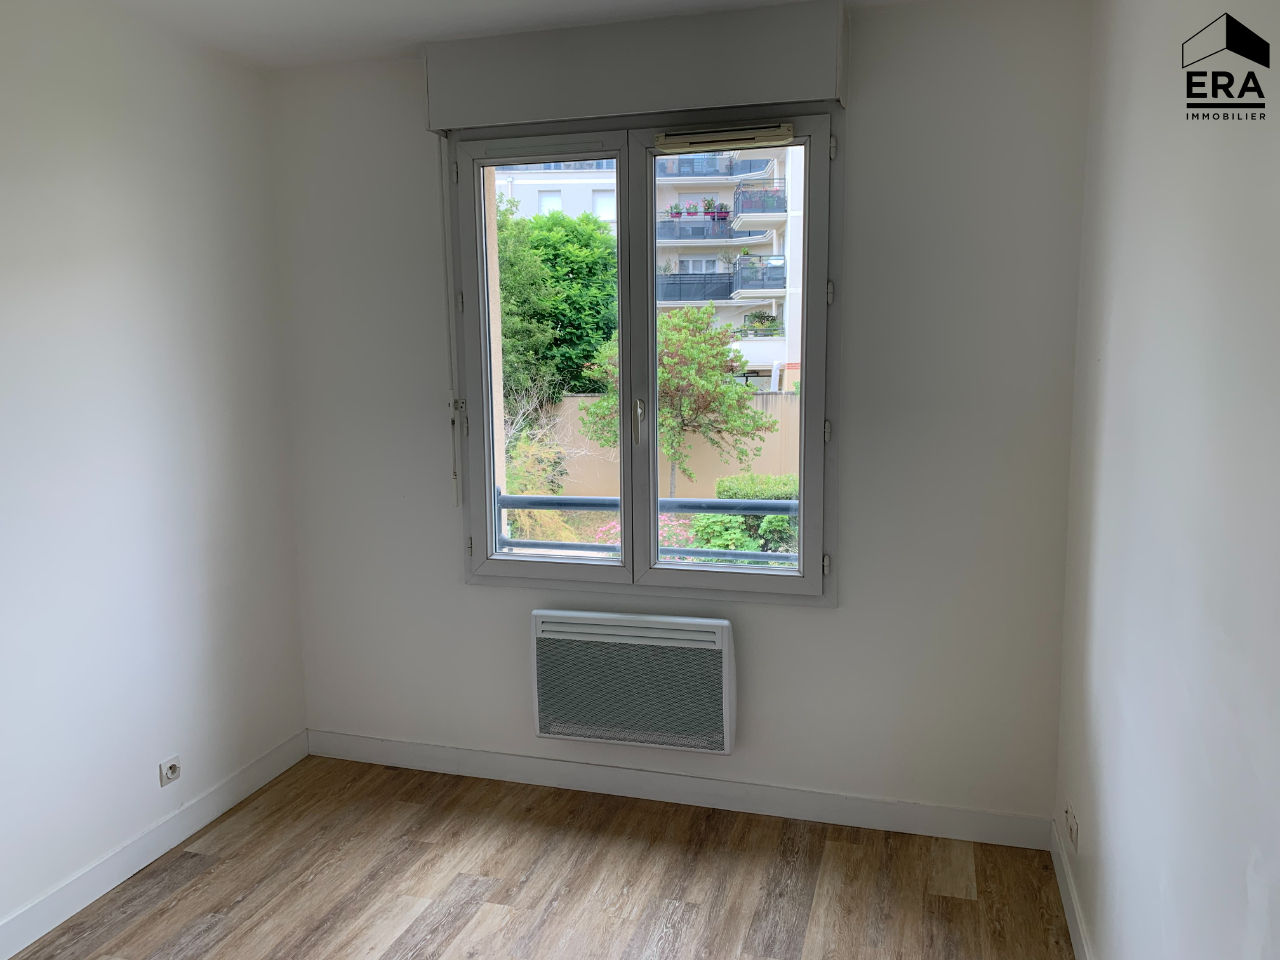 Appartement NEUILLY SUR MARNE 2 pièces 45 m²